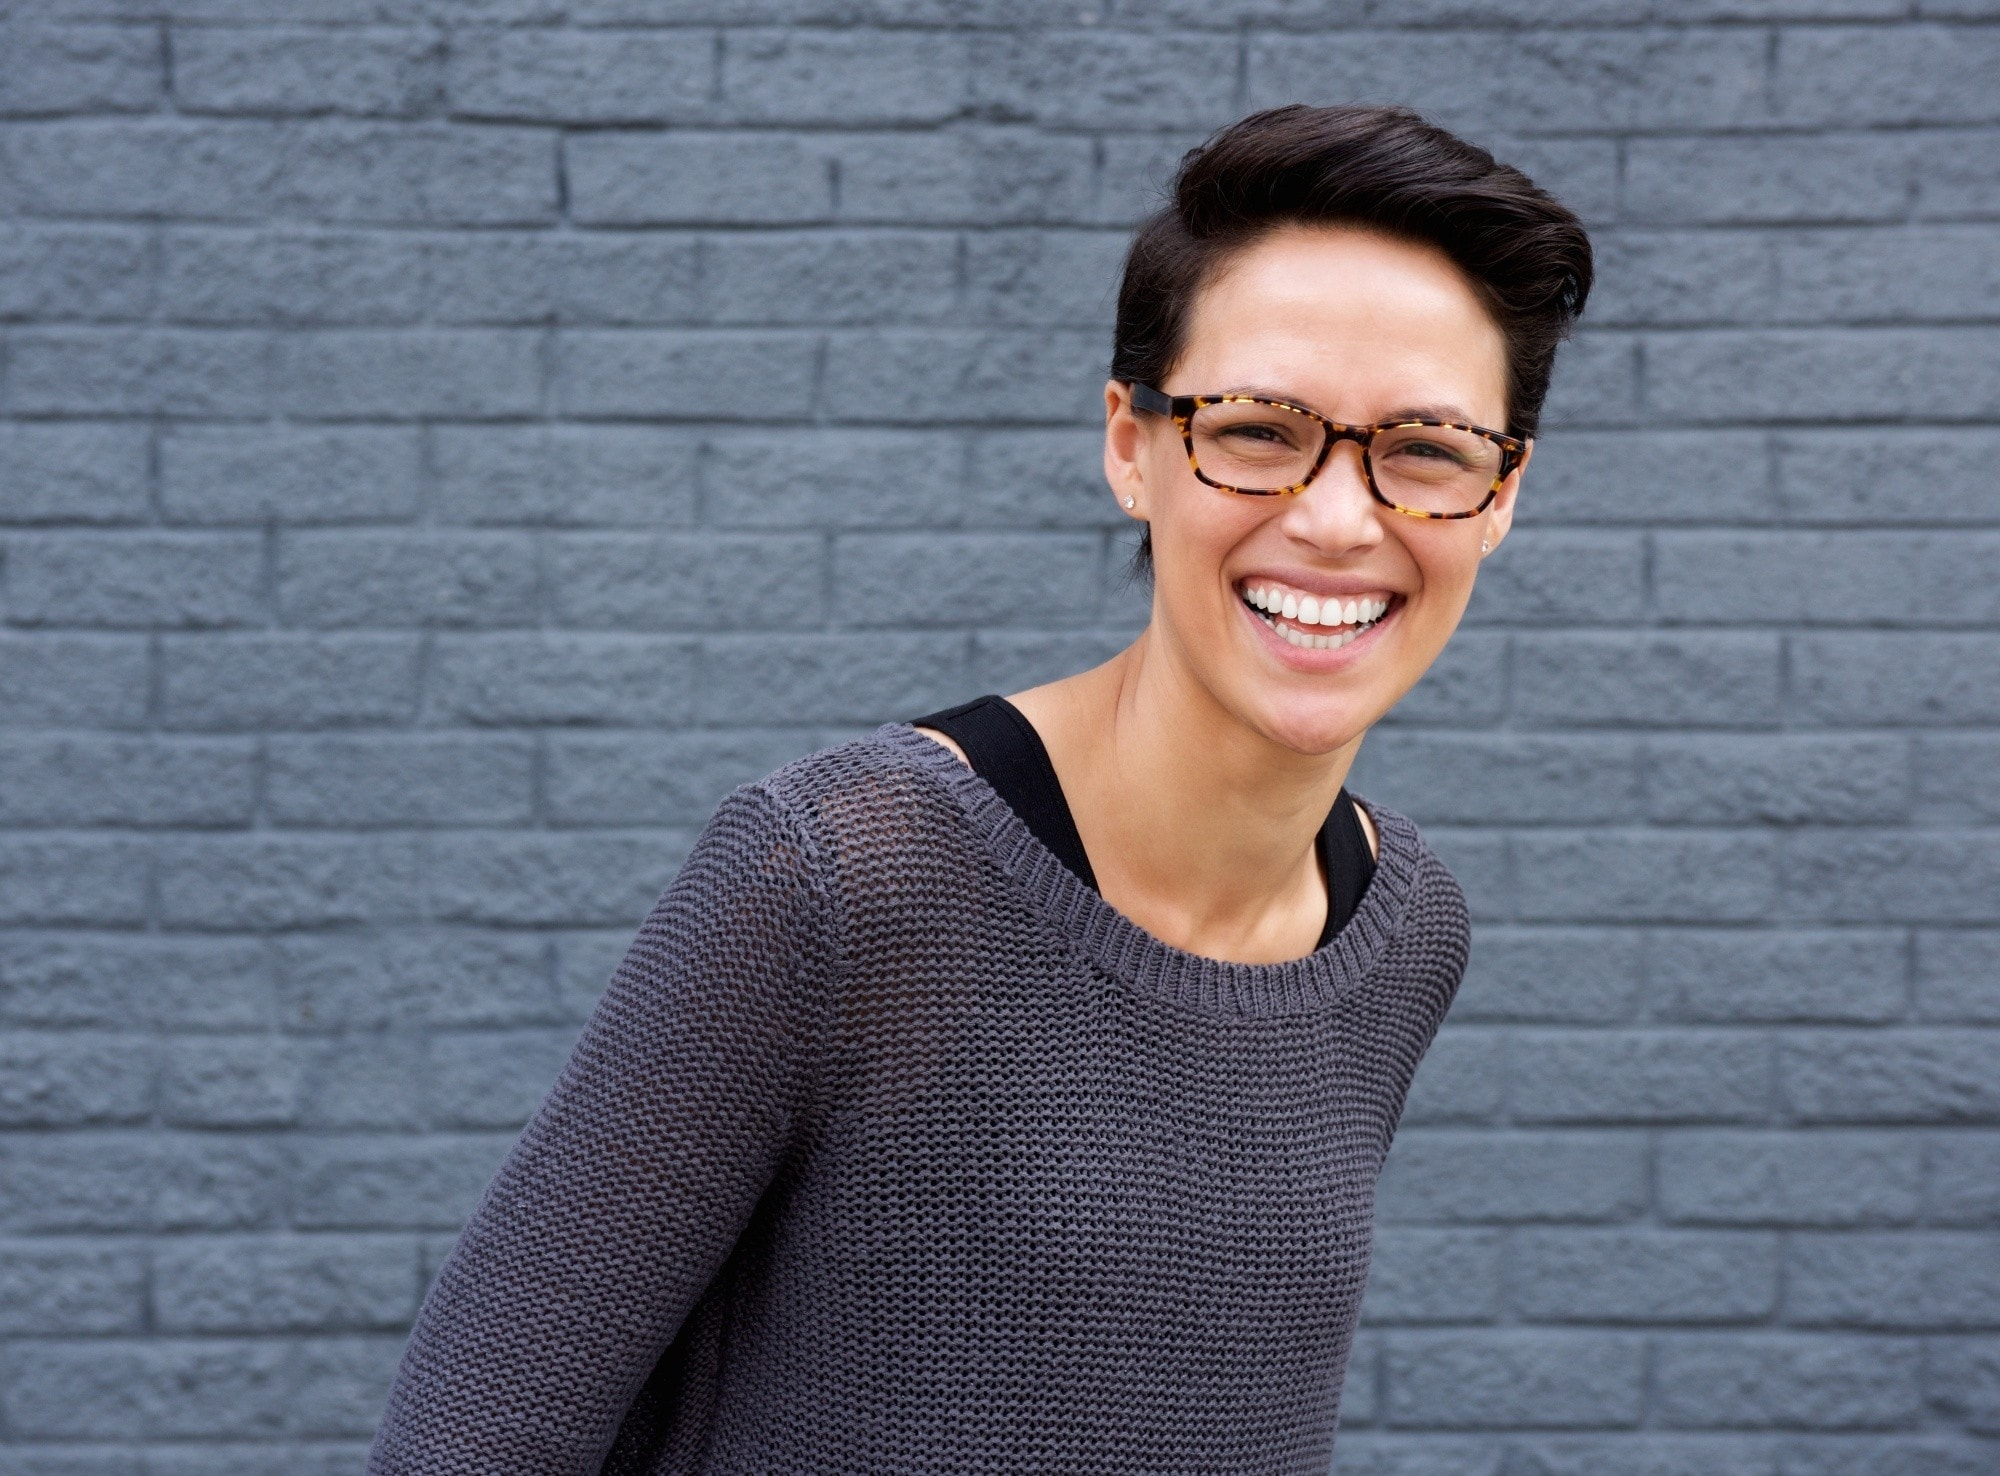 Short hairstyles for long faces: Woman with short dark hair wearing eyeglasses and gray sweater smiling